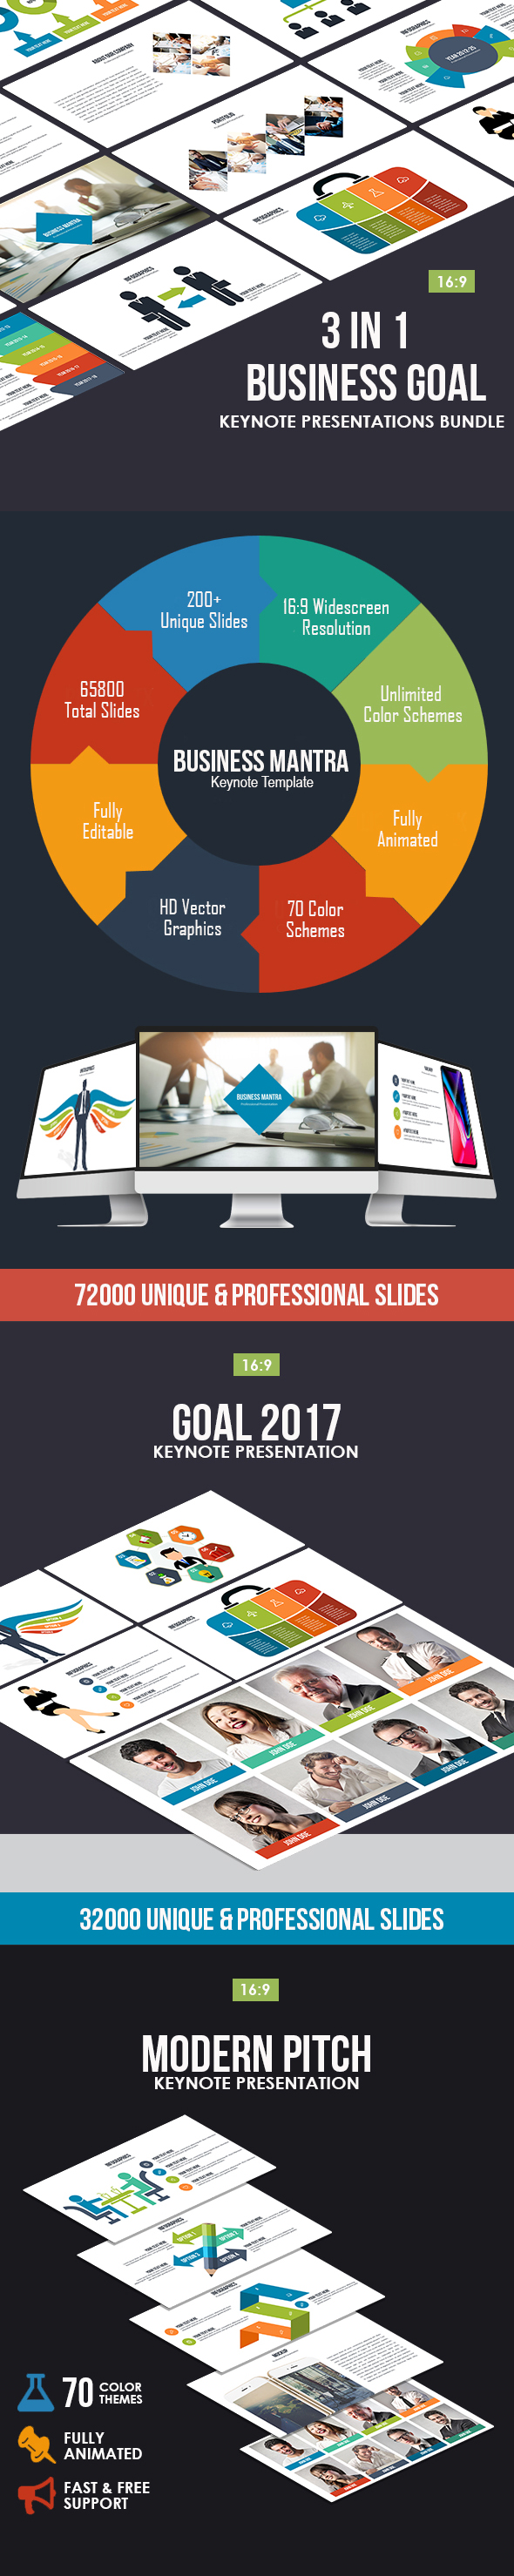 GraphicRiver 3 In 1 Business Goal Keynote Bundle 21006705